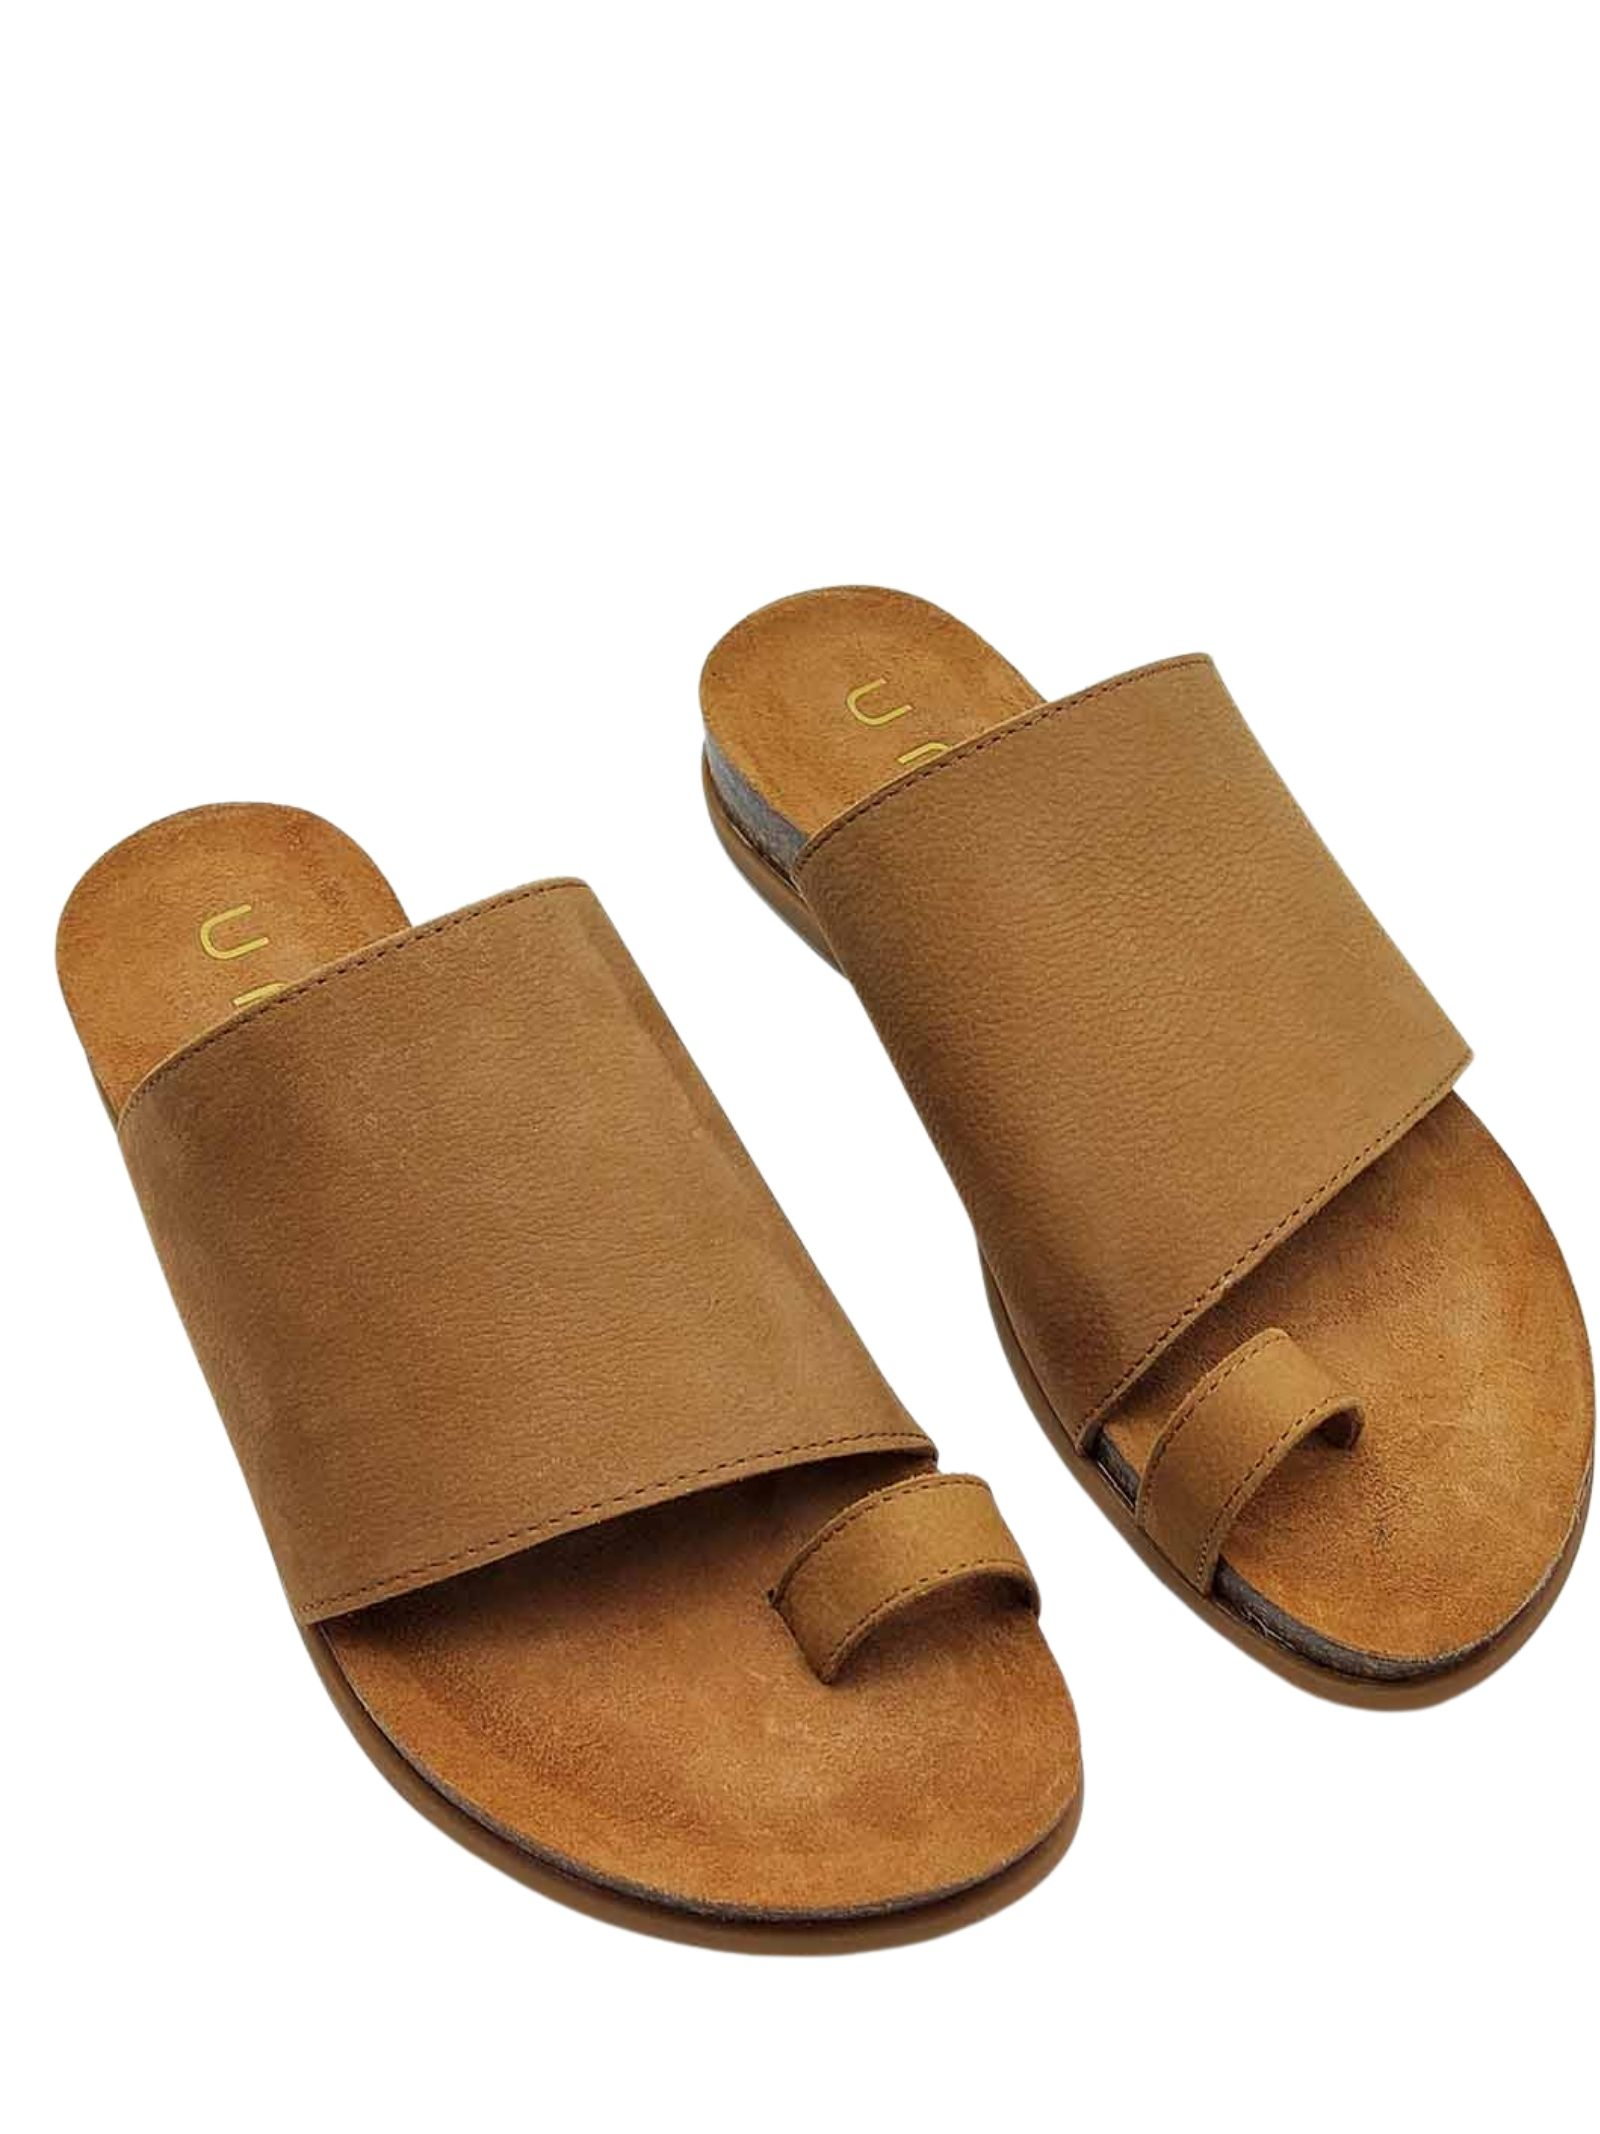 Women's Shoes Thong Sandals in Tan Leather with Band and Fussbett with Rubber Sole Unisa | Flat sandals | CALESIN014